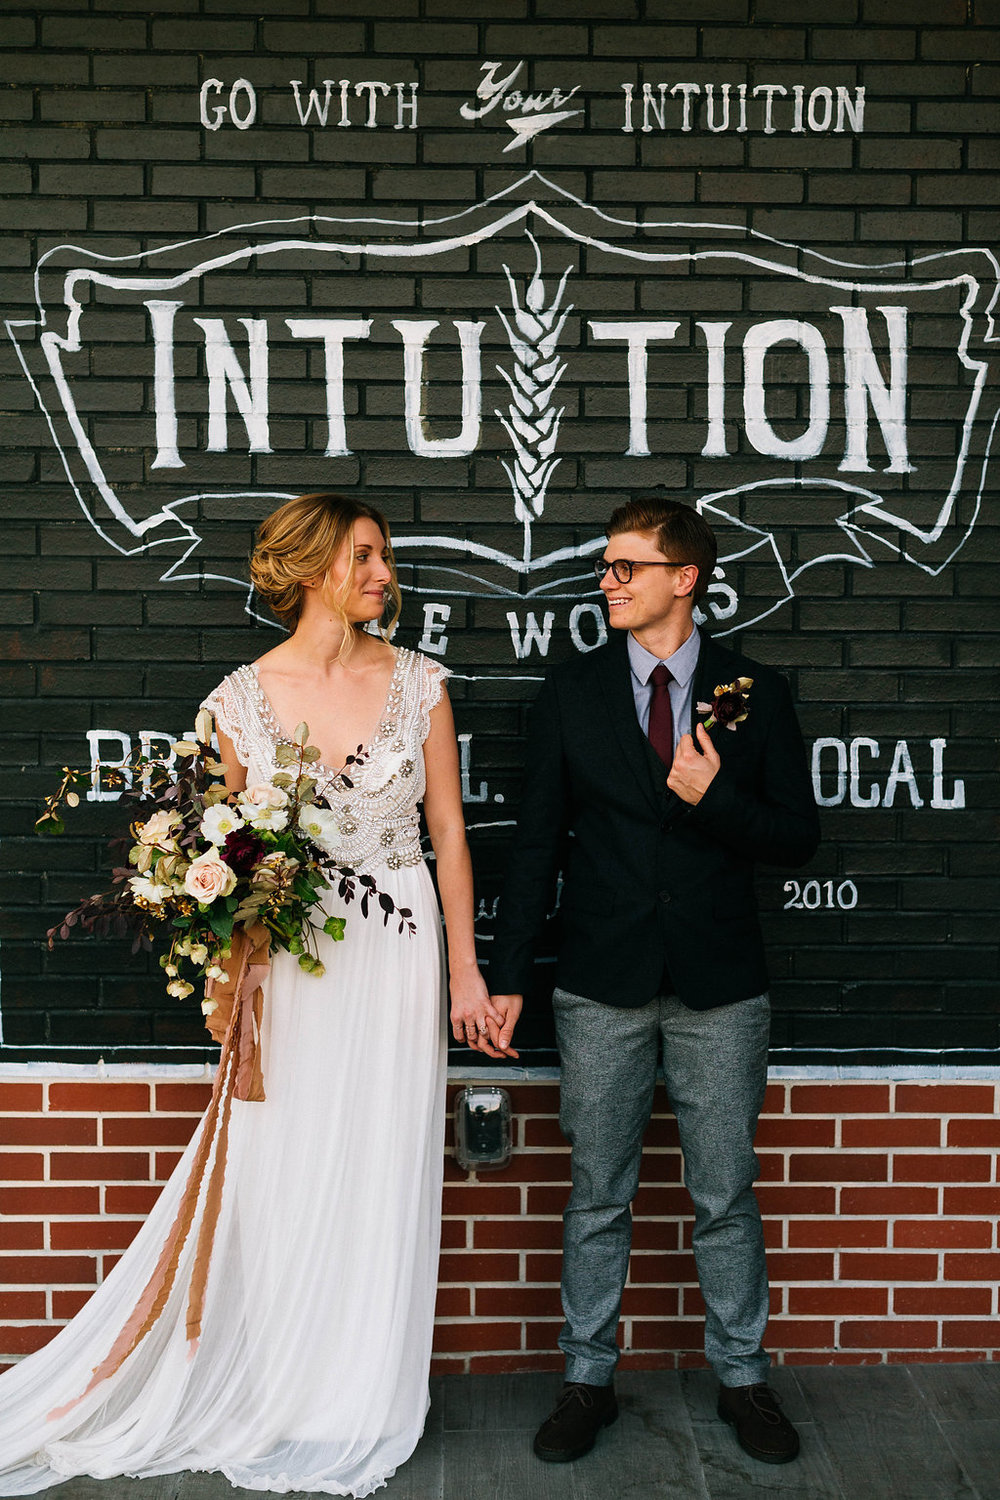 christina-karst-photography-jacksonville-wedding-photographer_intuition-brewery-ivory-and-beau-bridal-boutique-savannah-wedding-planner-savannah-bridal-boutique-coco-anna-campbell-jacksonville-bridal-savannah-florist-6.jpg